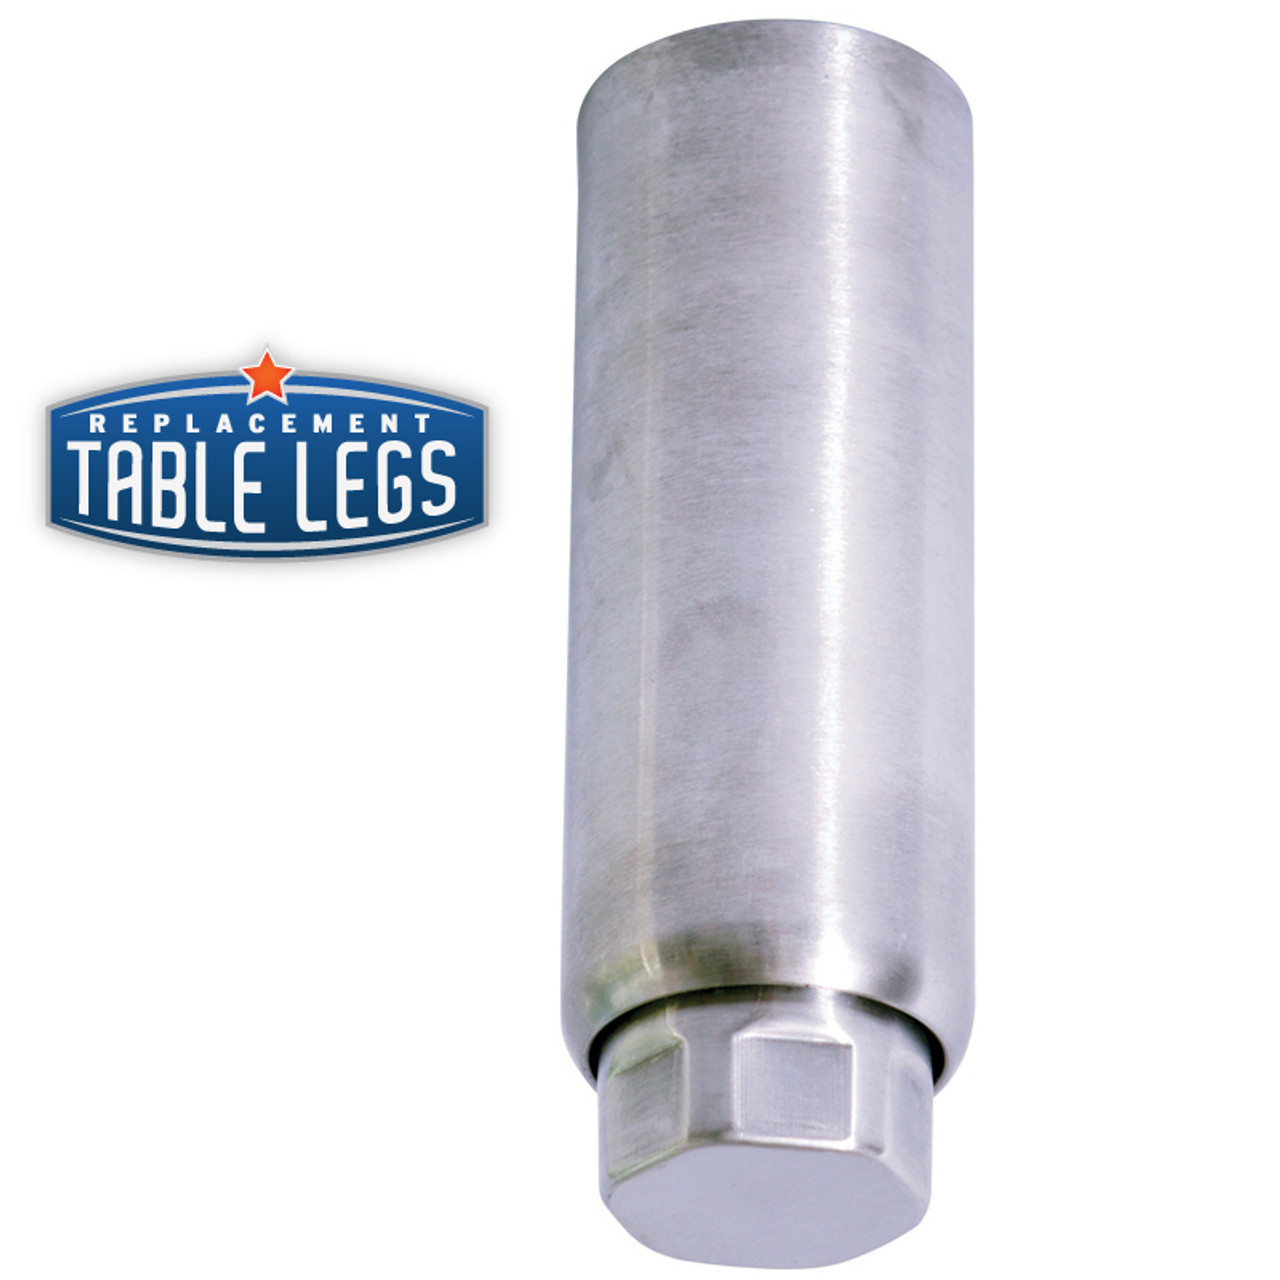 Heavy Duty Equipment Leg, Food Grade Stainless Steel, 6'' Equipment Leg,  2'' diameter, 1-7/16'' adjustable foot - replacementtablelegs.com